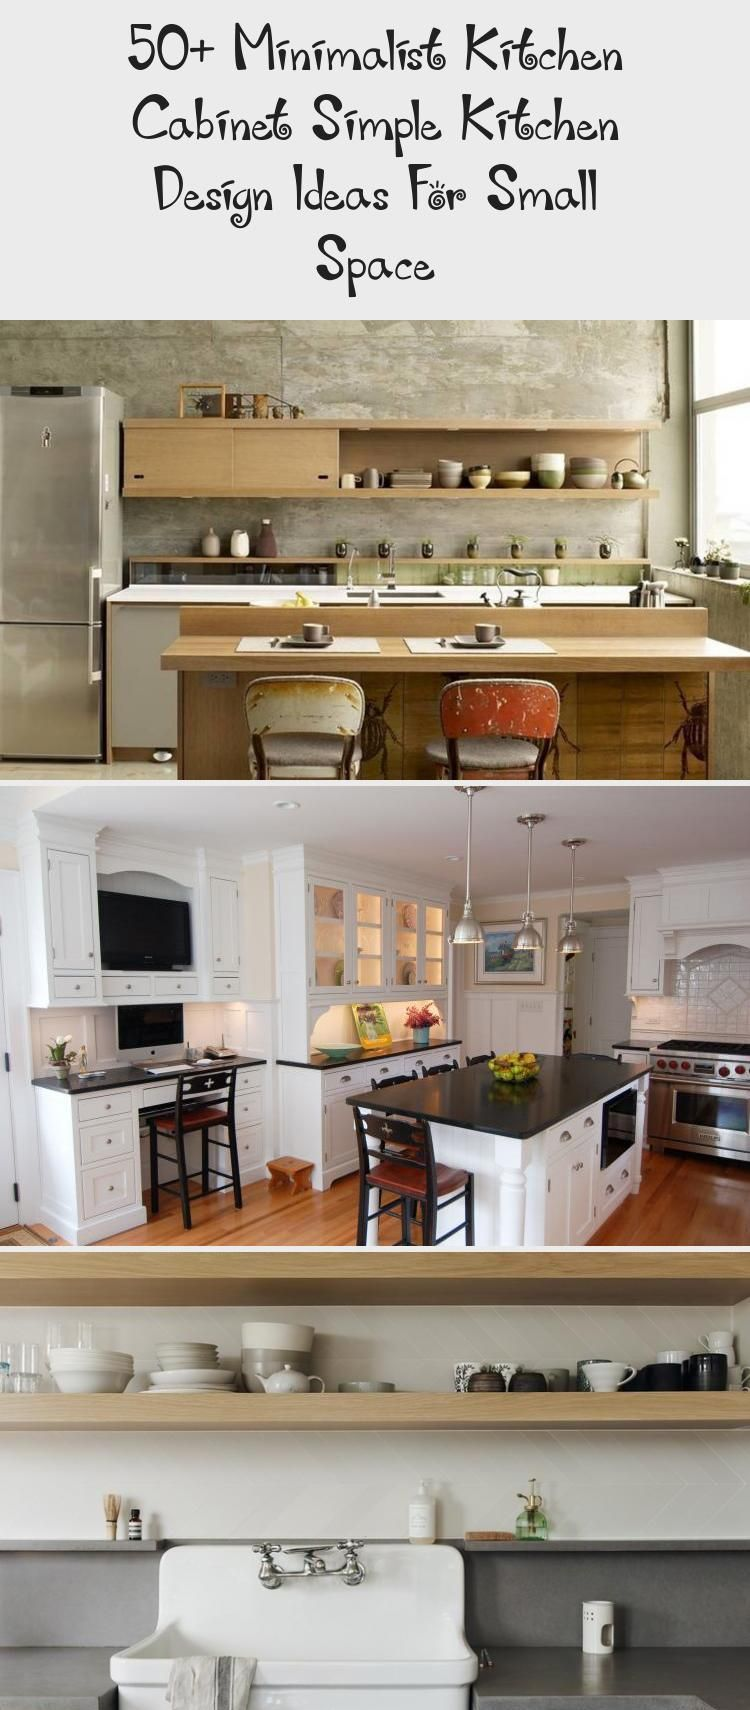 Different Ways To Paint Kitchen Cabinets New Kitchen Cabinets Color Ideas New Kuch In 2020 Simple Kitchen Design Small Kitchen Cabinet Design Kitchen Renovation Design